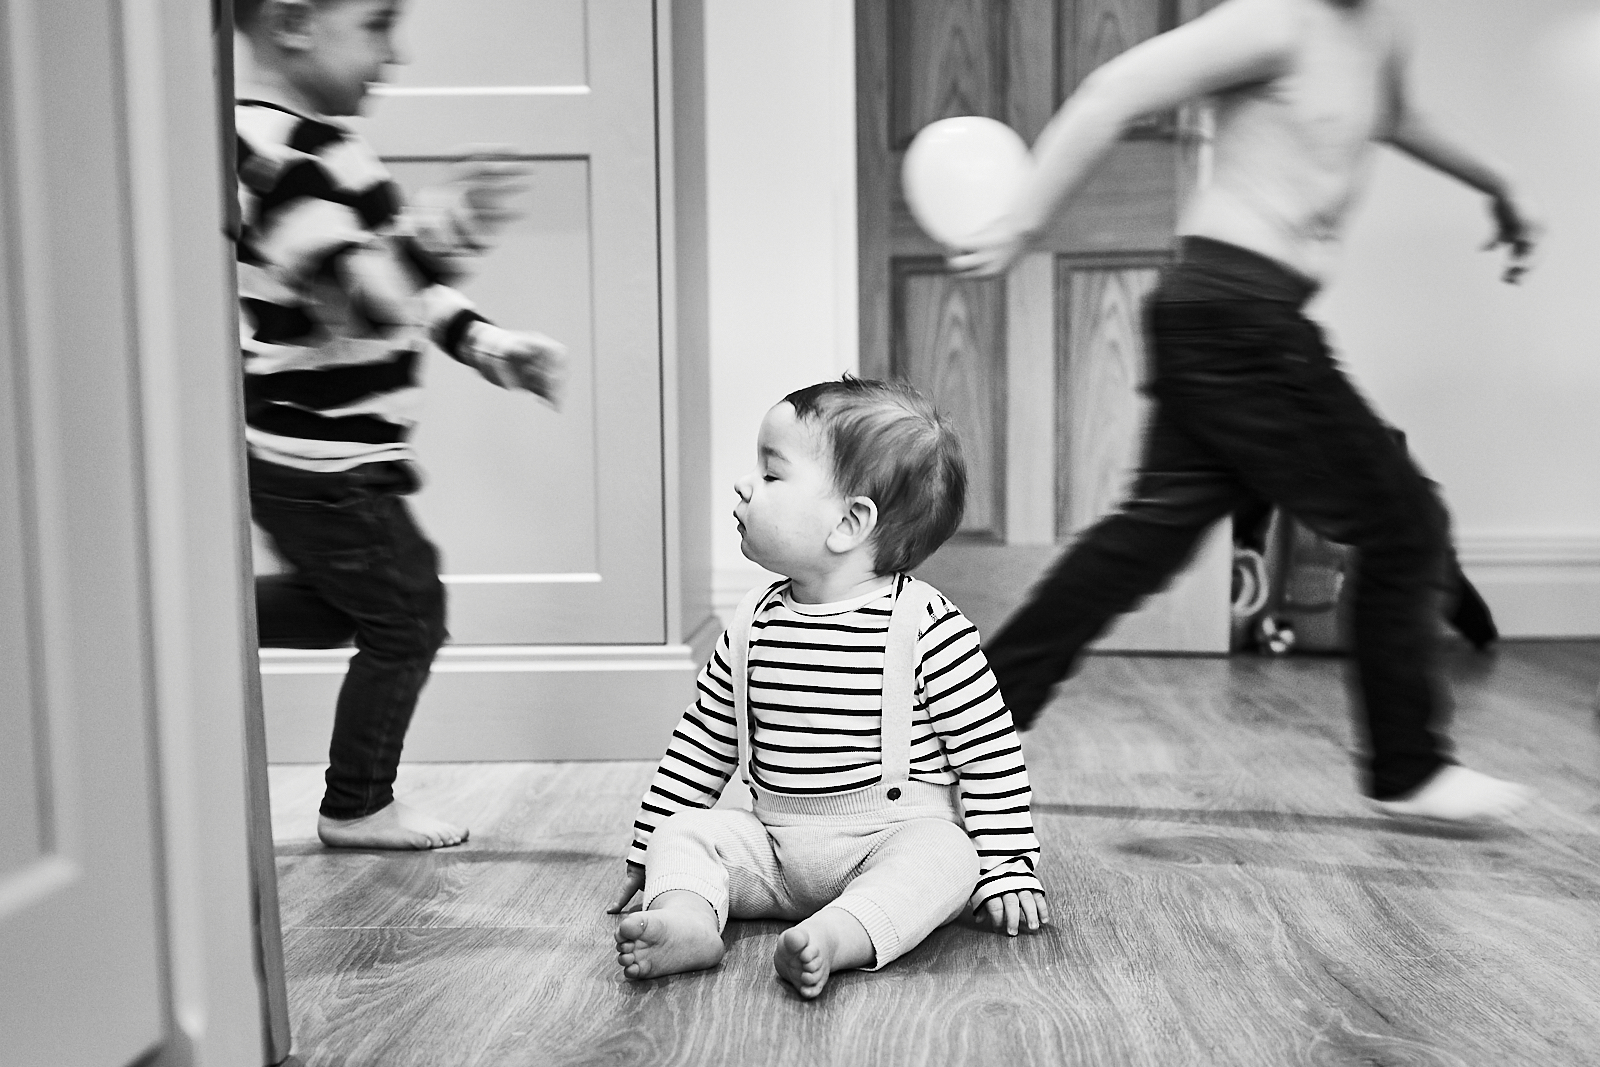 fun photo of family life with boys running at home